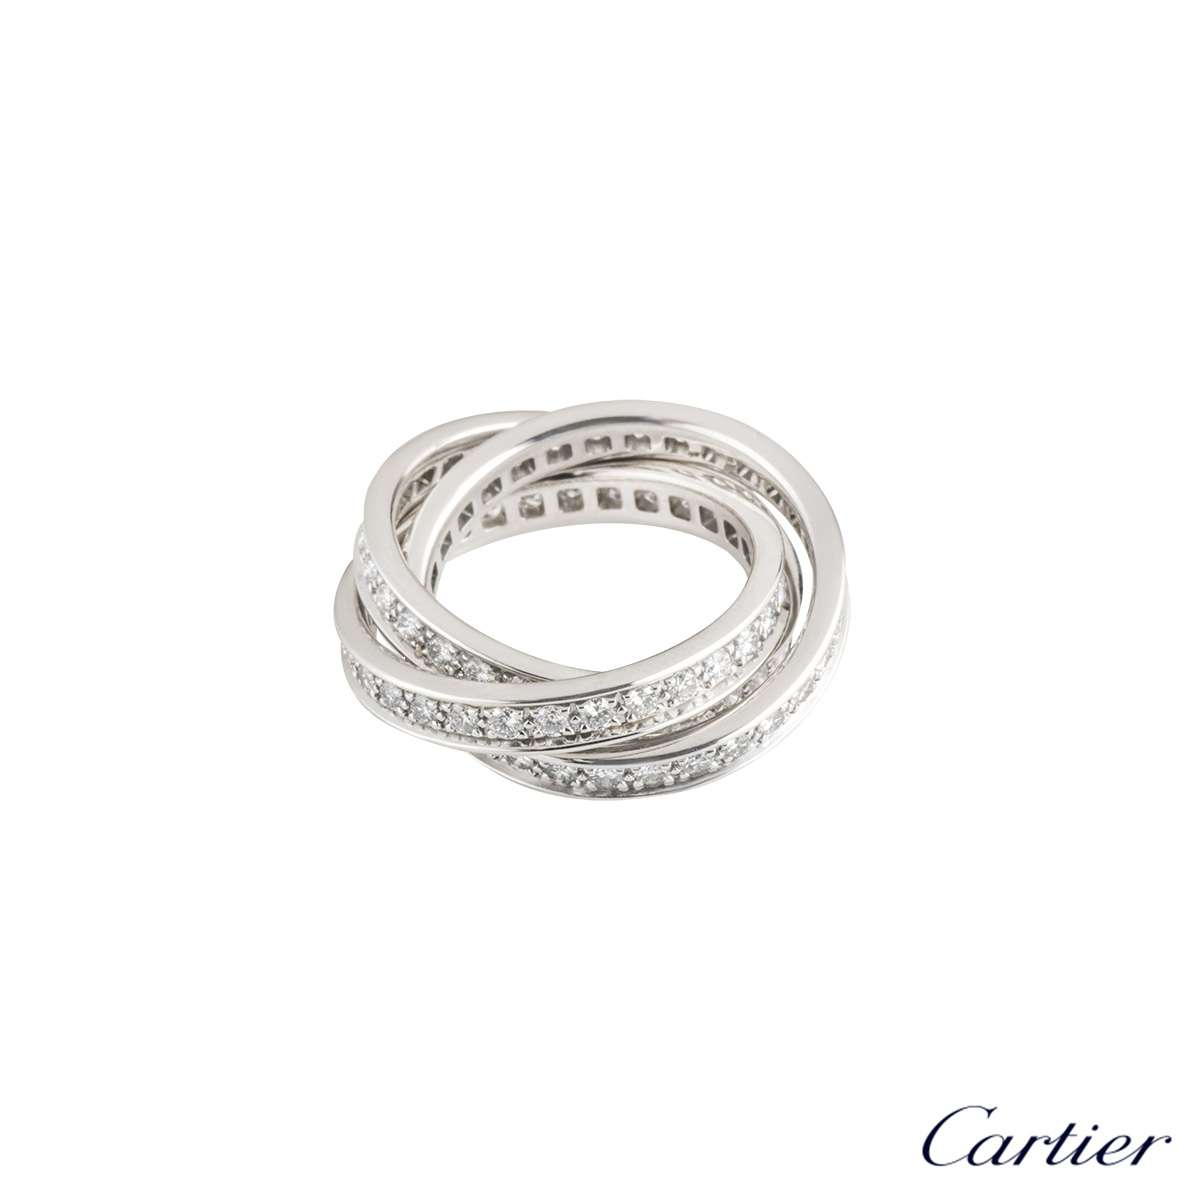 Cartier 18k White Gold Diamond Set Trinity Ring B